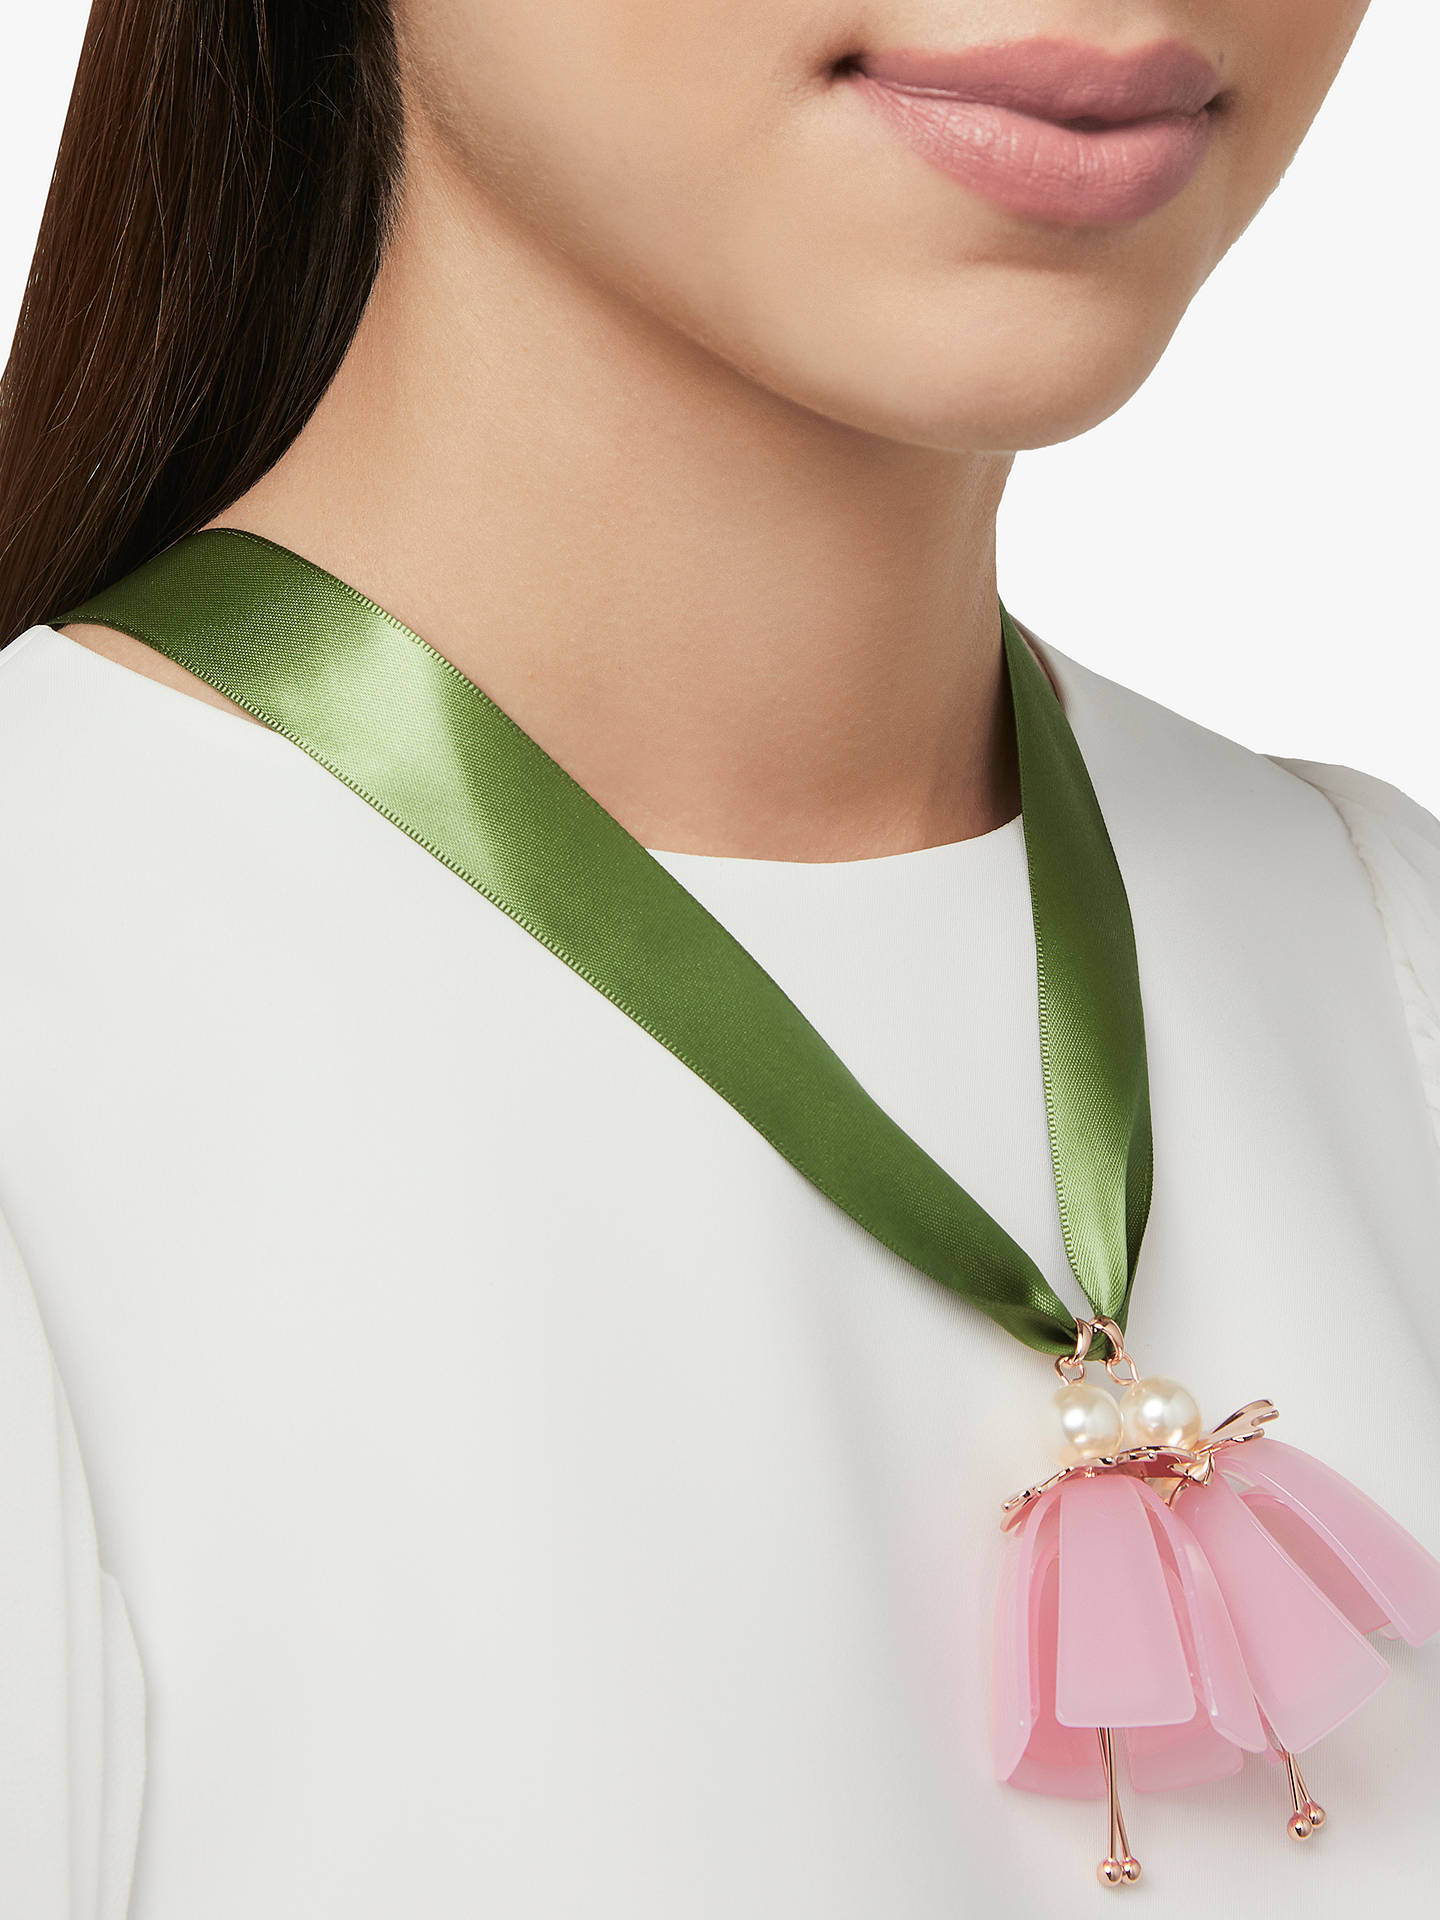 BuyTed Baker Daliana Dolly Flower Pendant Necklace, Green Online at johnlewis.com